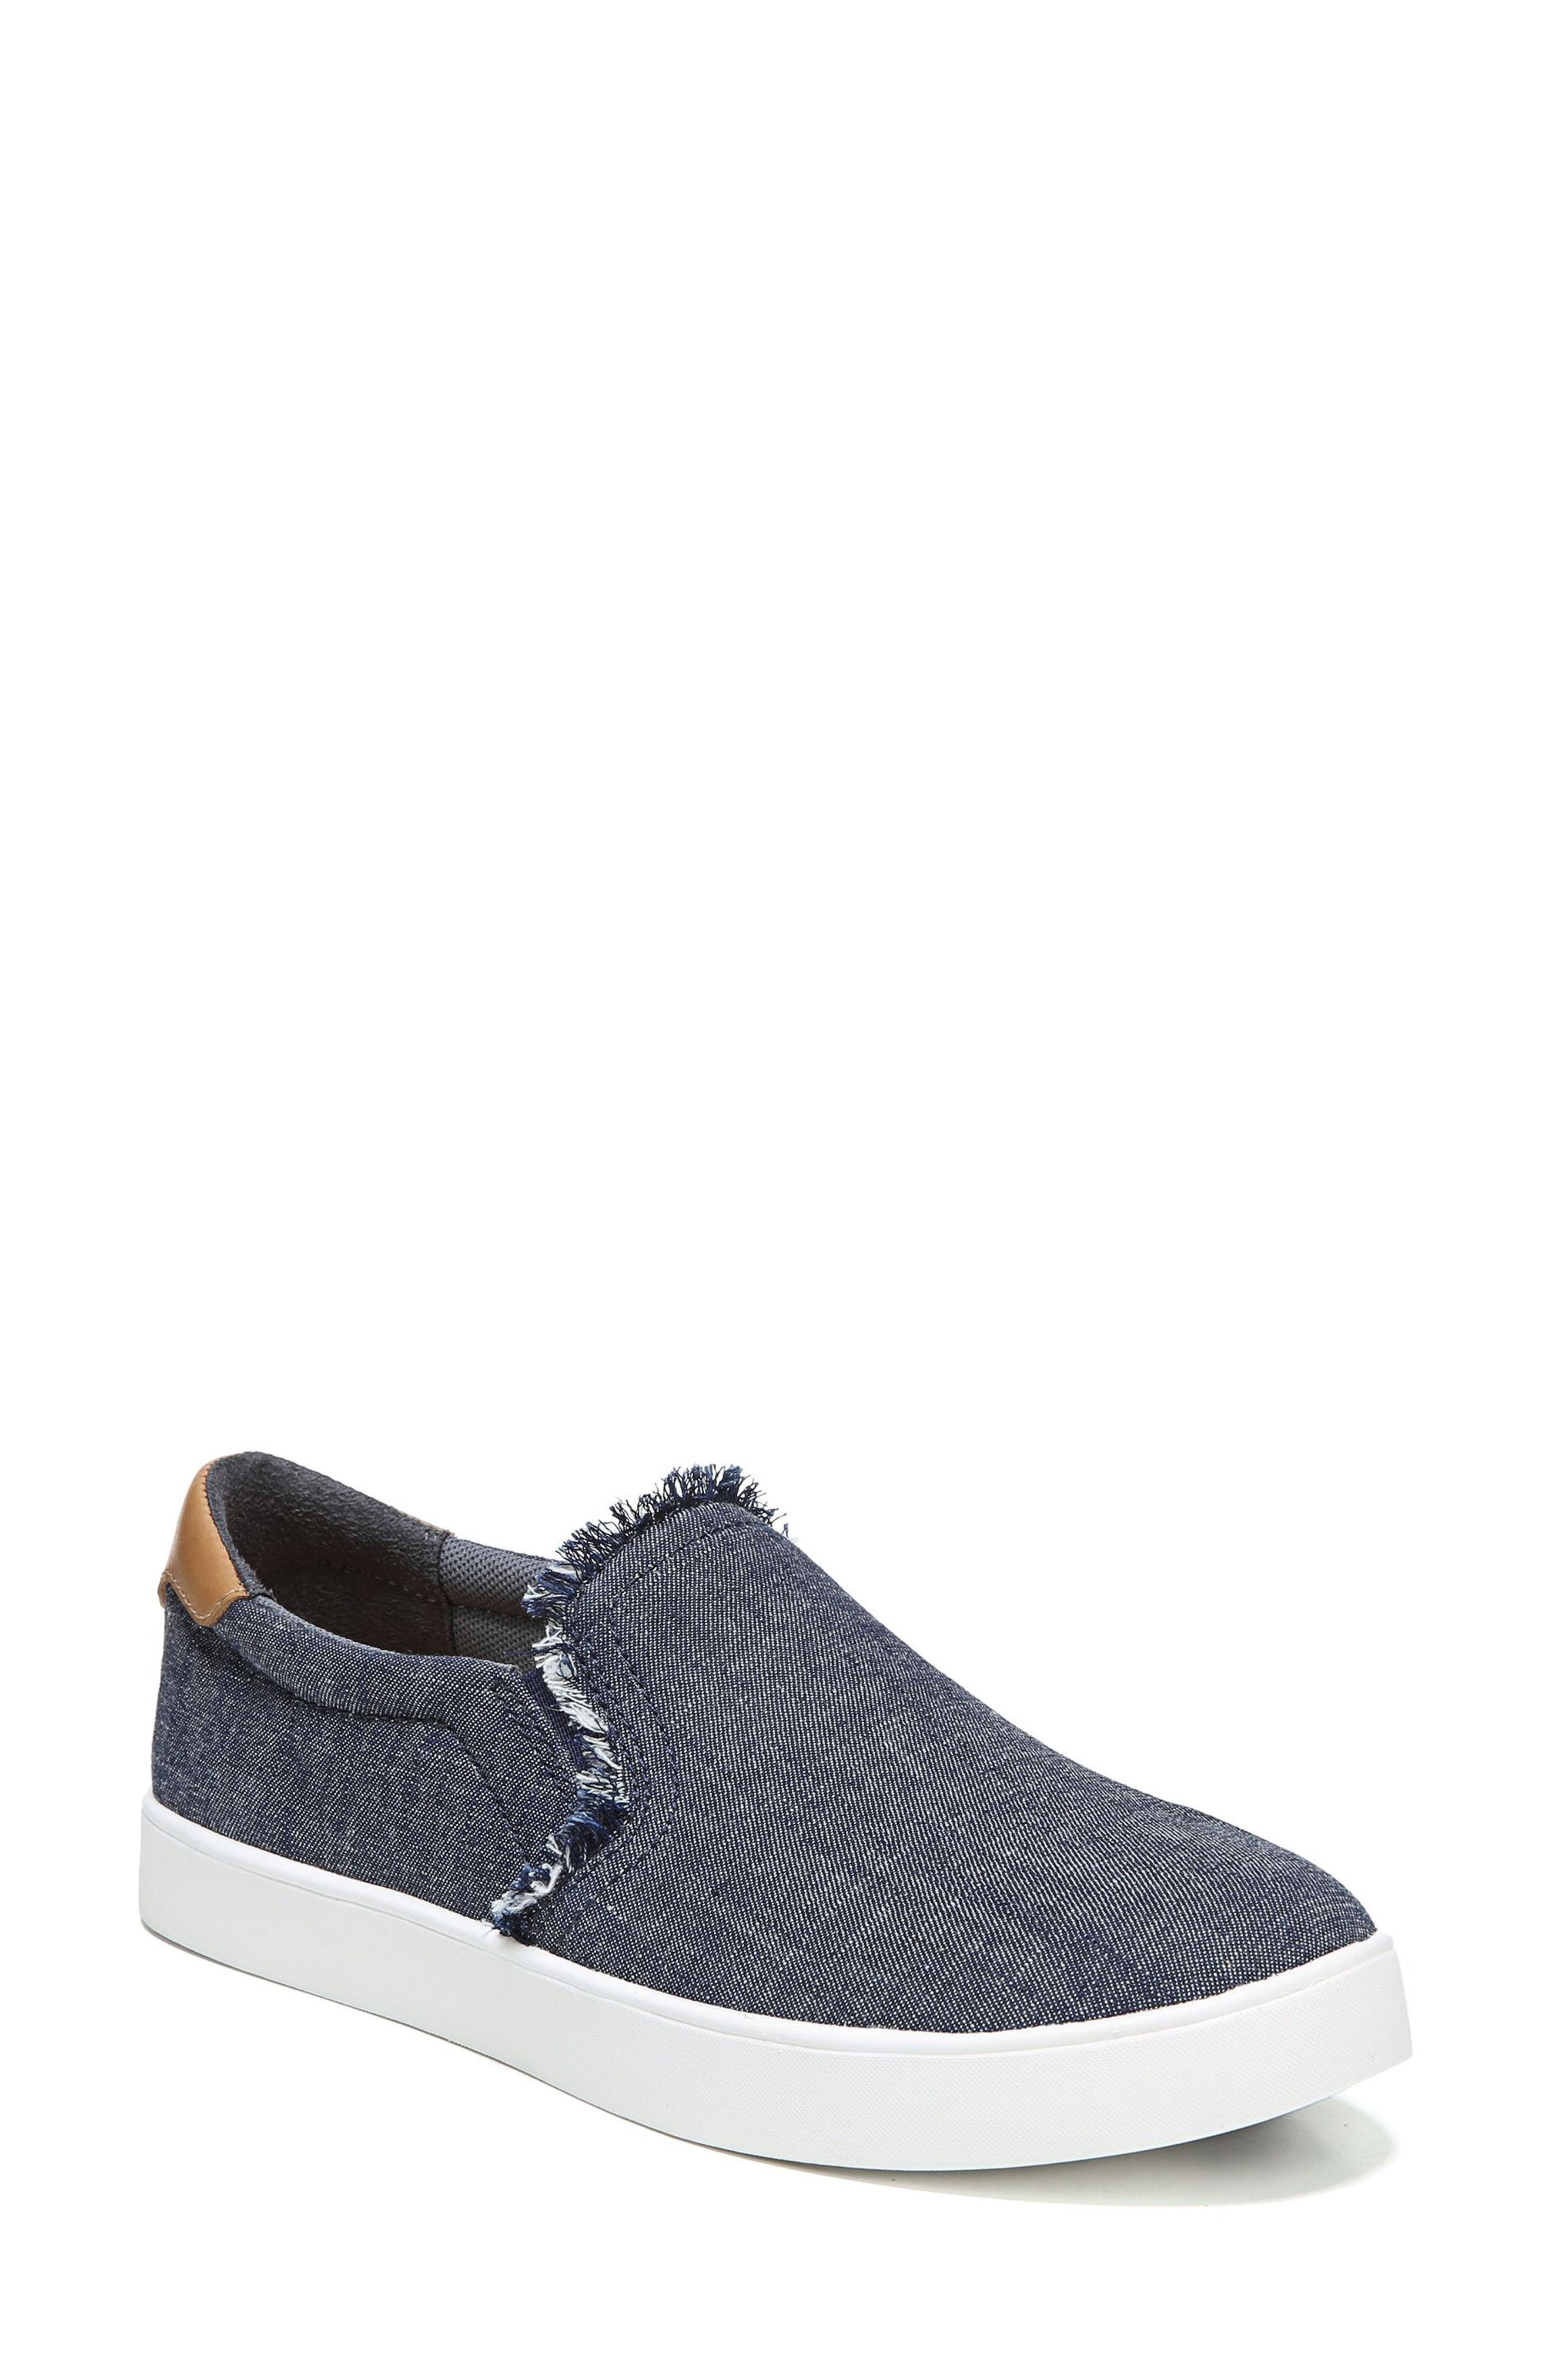 Scout Fray Slip-on Sneaker,                         Main,                         color, 400